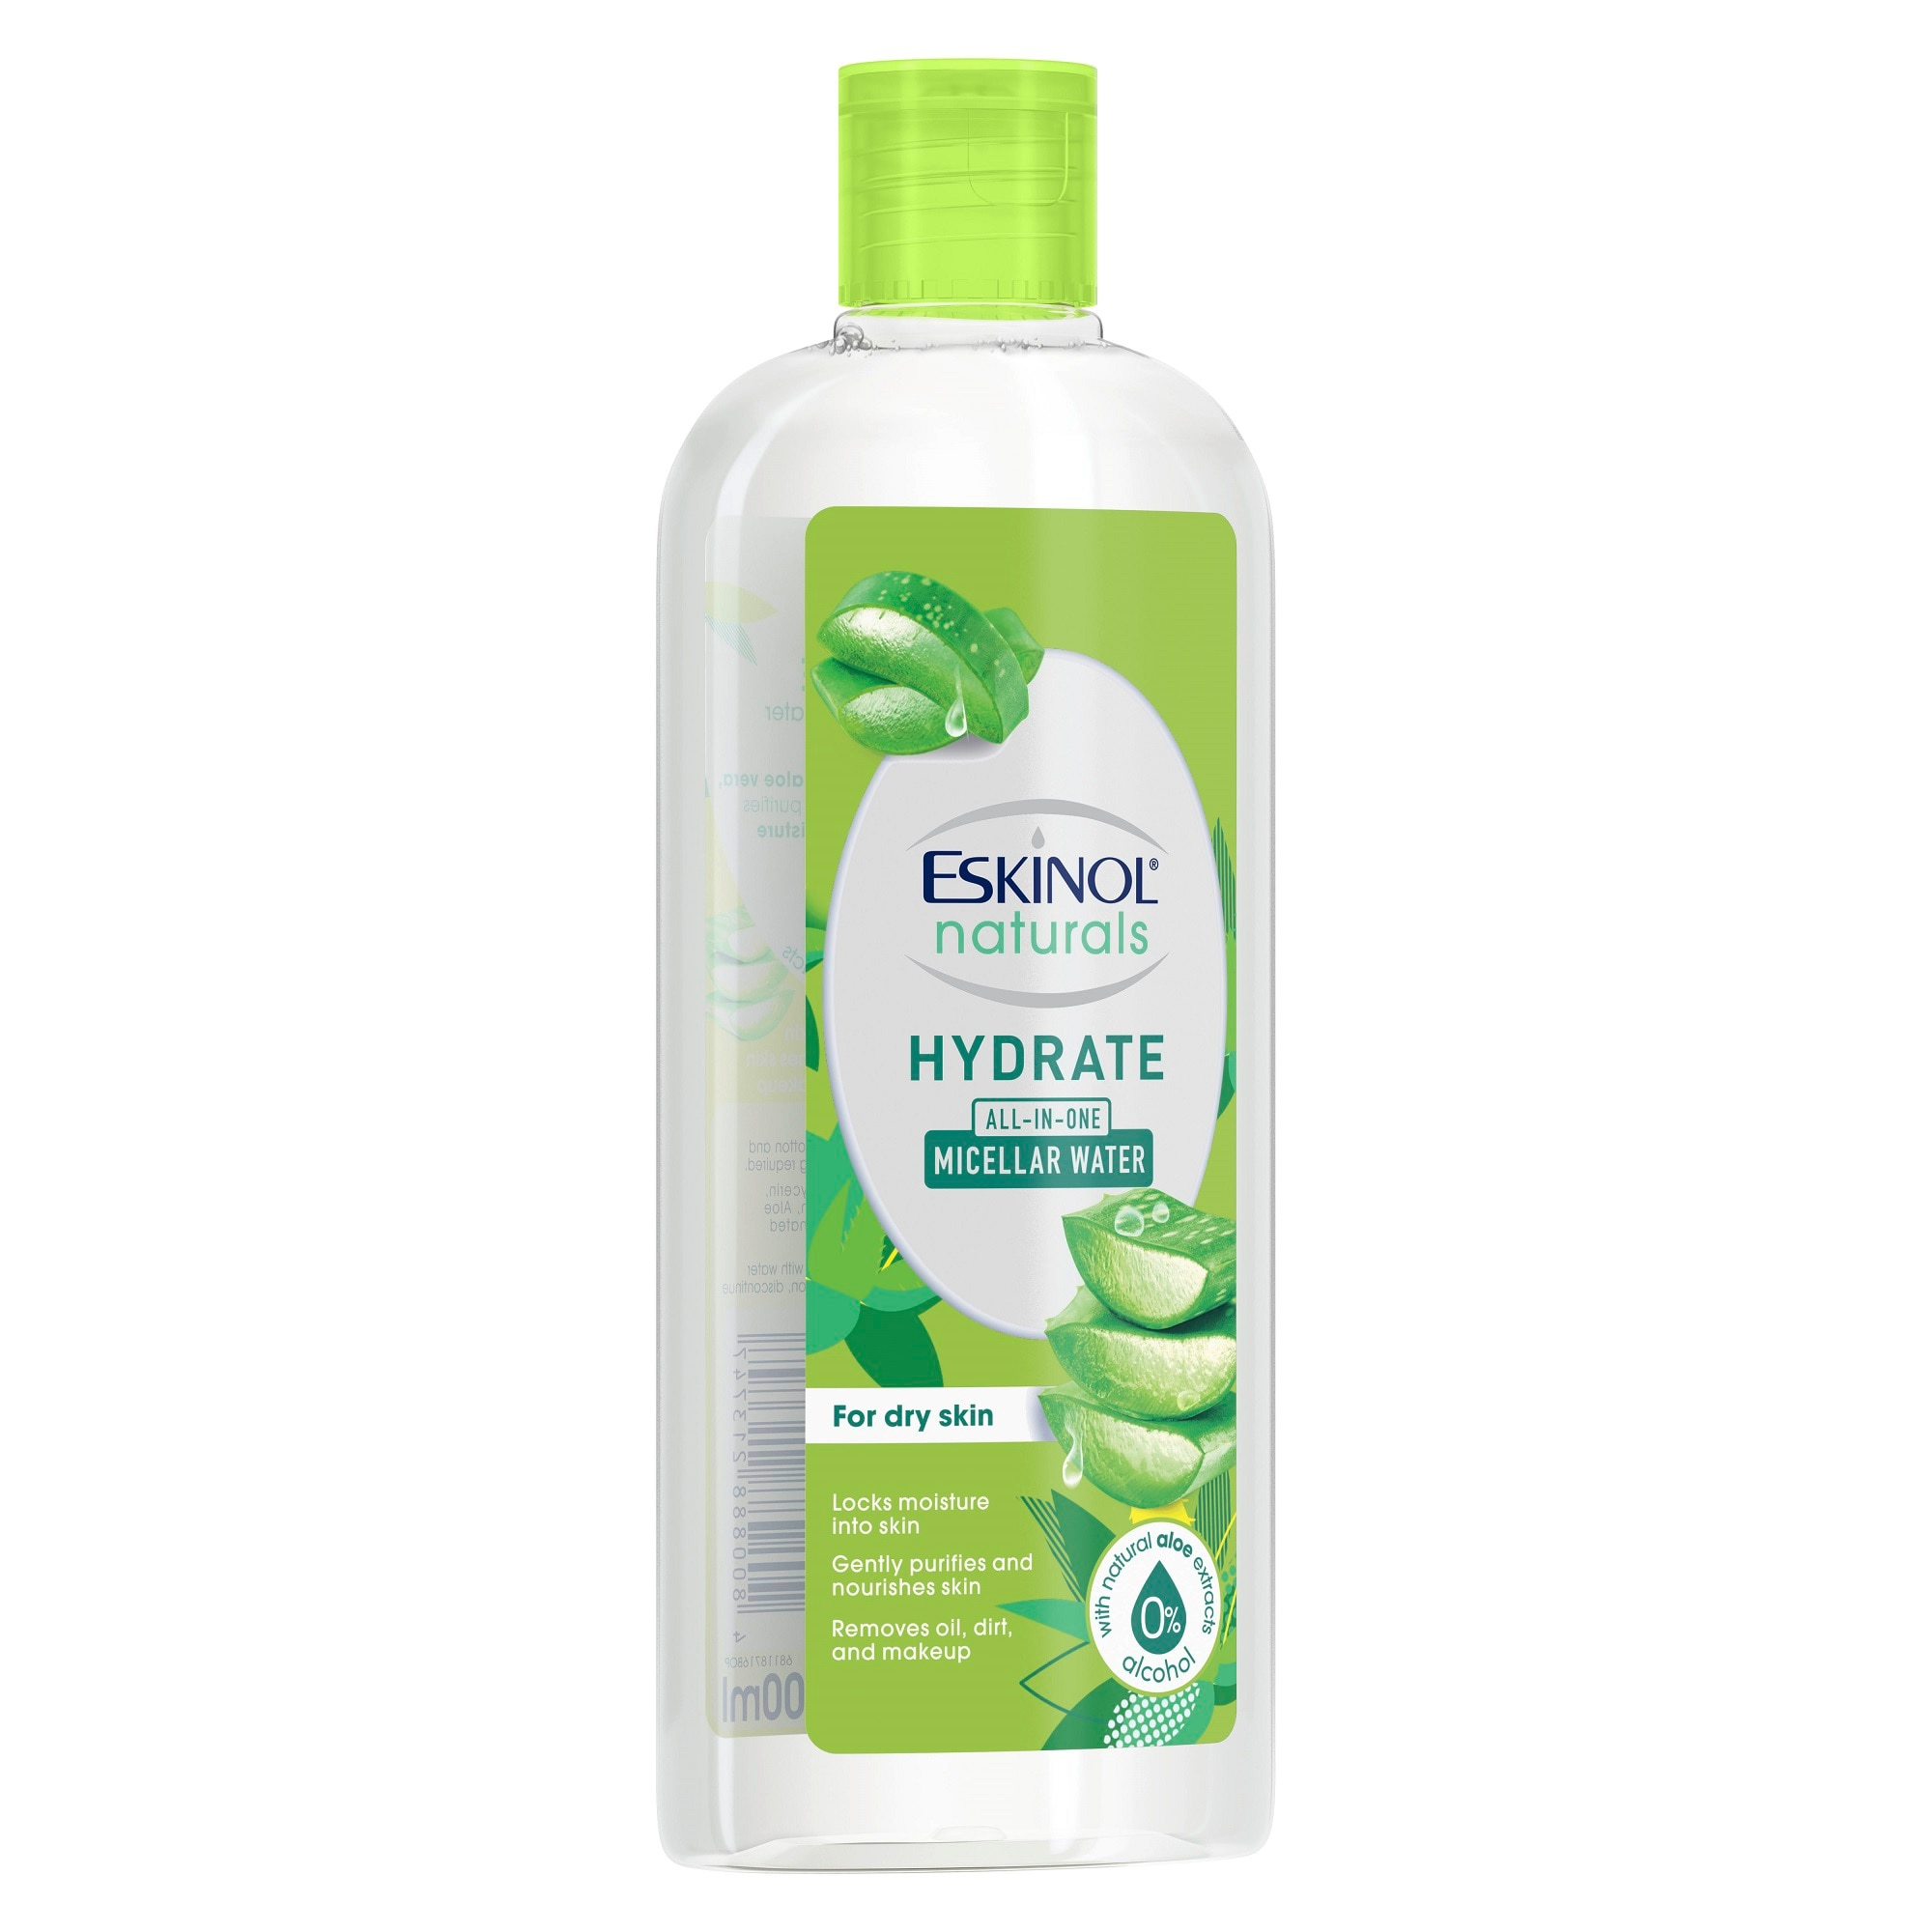 ESKINOLNaturals Micellar Water Hydrate  with Natural Aloe Extracts 200ml,For WomenEarth Day Sale